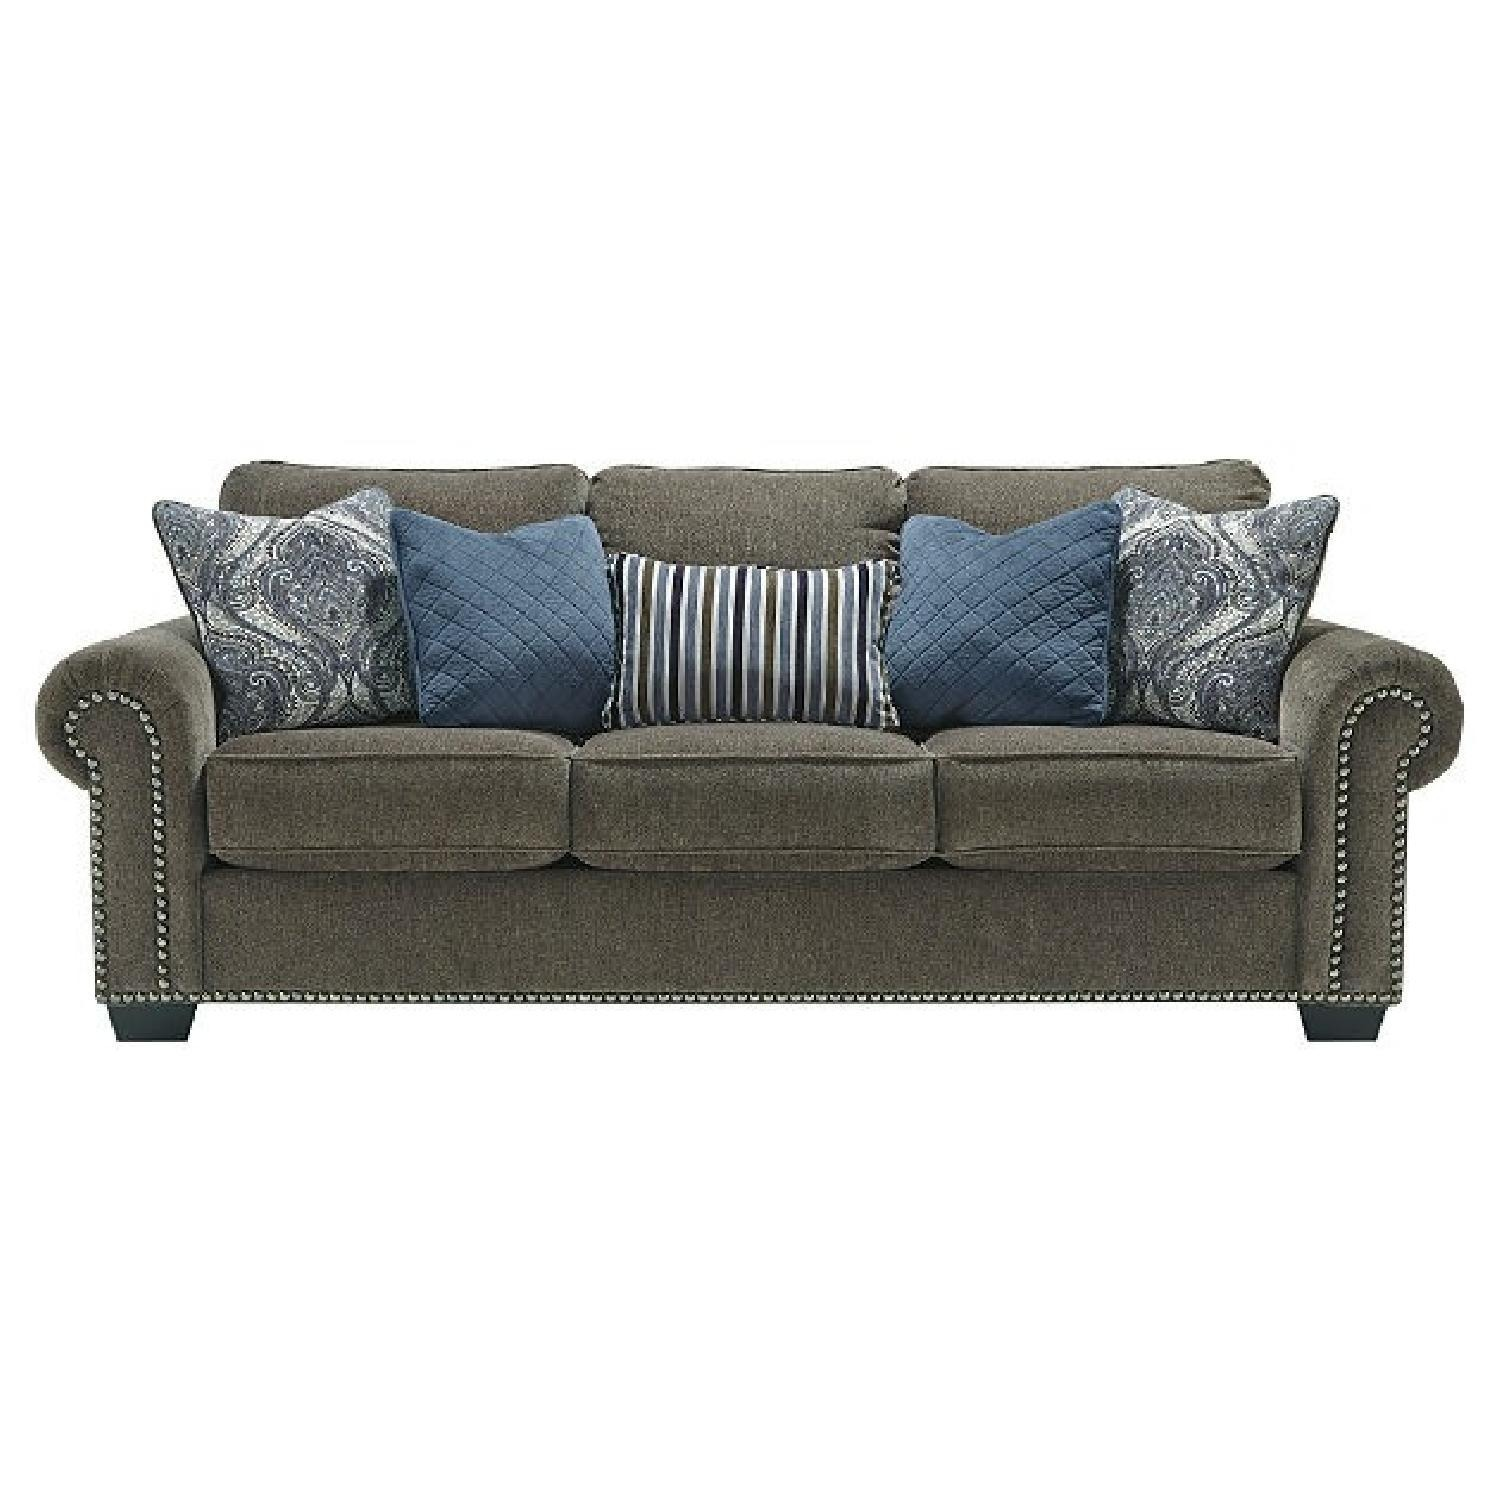 Ashley Navasota- 3 Seater Gray Chenille Sofa - image-1